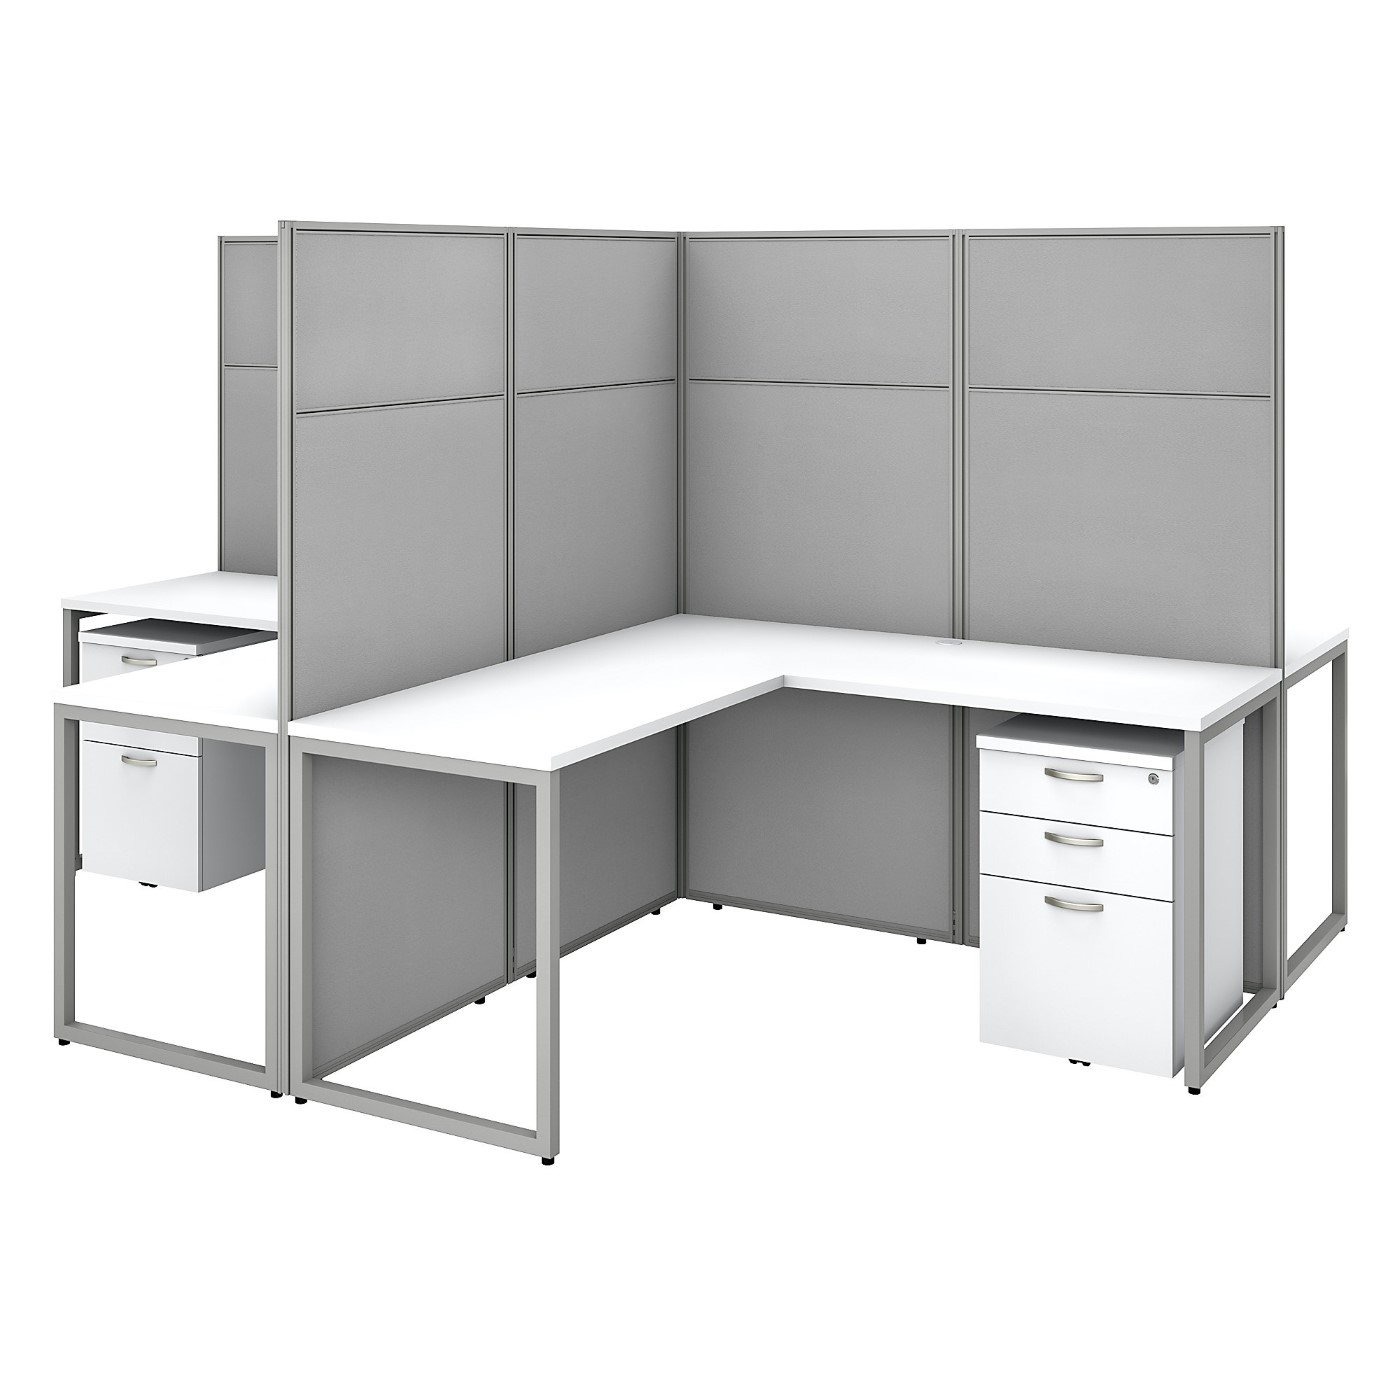 BUSH BUSINESS FURNITURE EASY OFFICE 60W 4 PERSON L SHAPED CUBICLE DESK WITH DRAWERS AND 66H PANELS. FREE SHIPPING SALE DEDUCT 10% MORE ENTER '10percent' IN COUPON CODE BOX WHILE CHECKING OUT. ENDS 5-31-20.